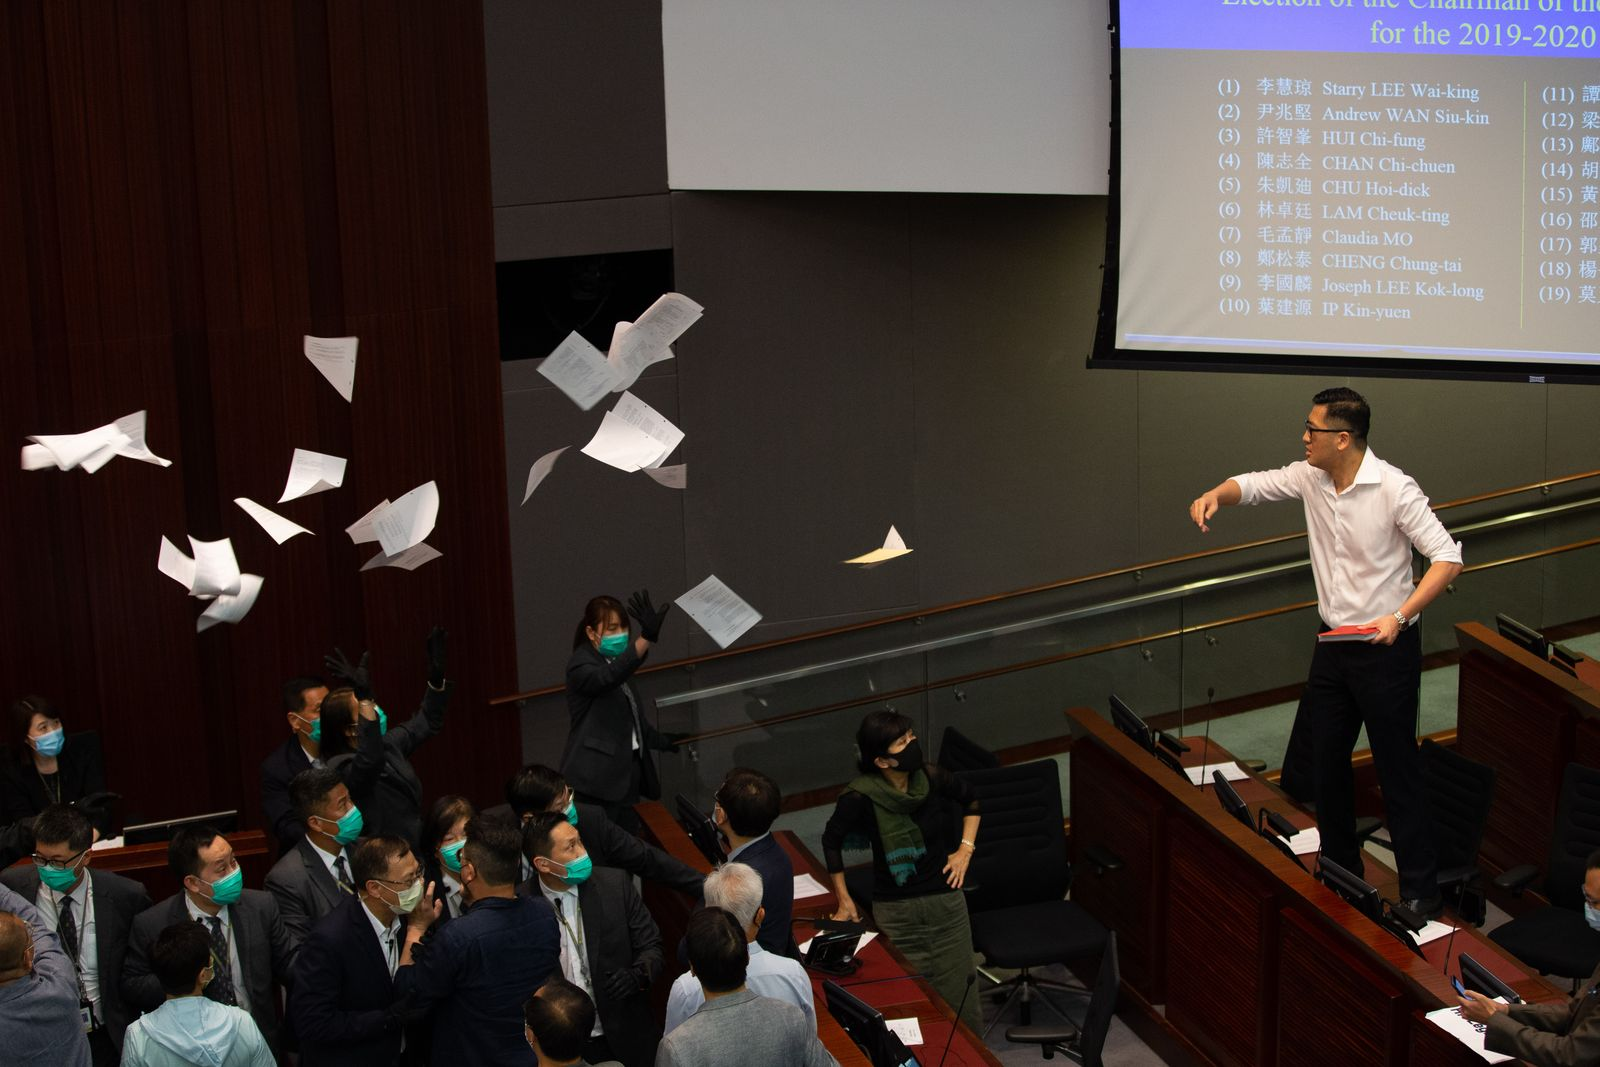 Lawmakers tussle over chairmanship of the House Committee, Hong Kong, China - 18 May 2020